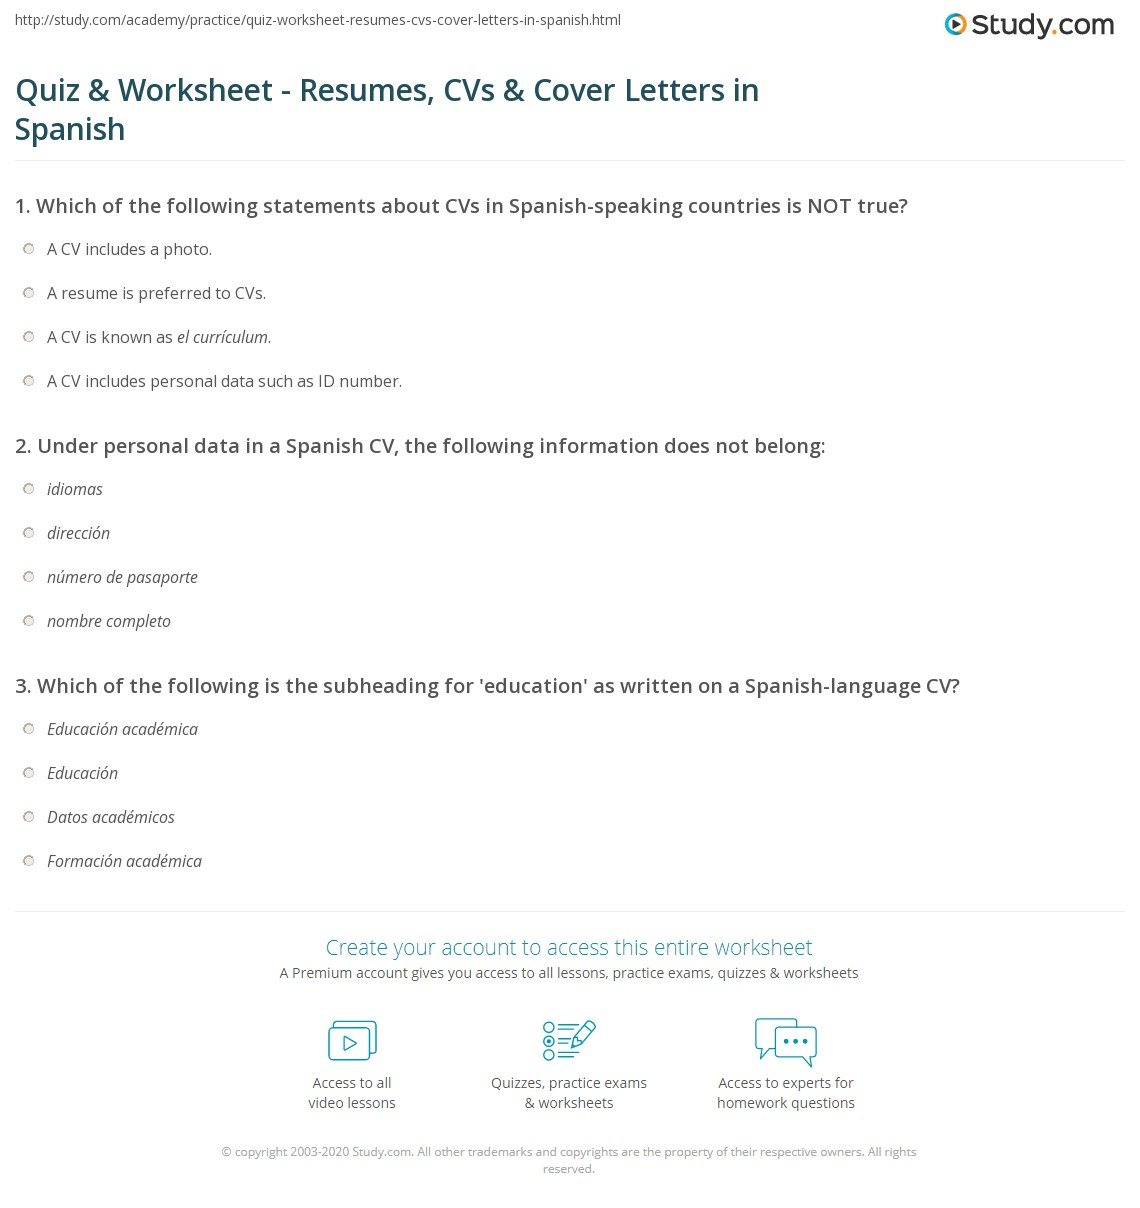 quiz  worksheet  resumes cvs  cover letters in spanish  studycom also print writing resumes cvs  cover letters in spanish worksheet